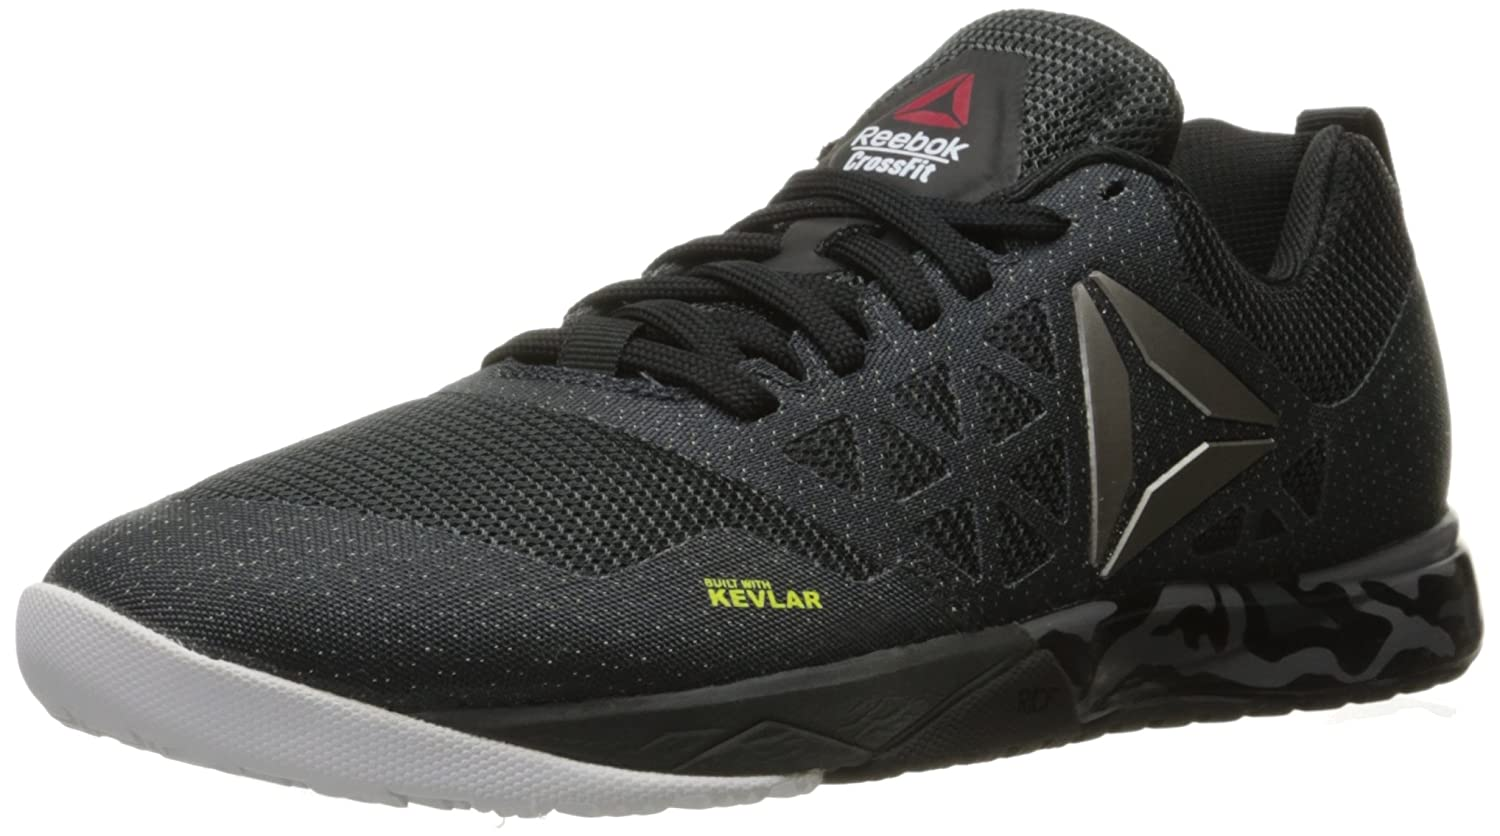 883b3c82bf08 Buy mens reebok crossfit shoes Sport Online - 57% OFF!